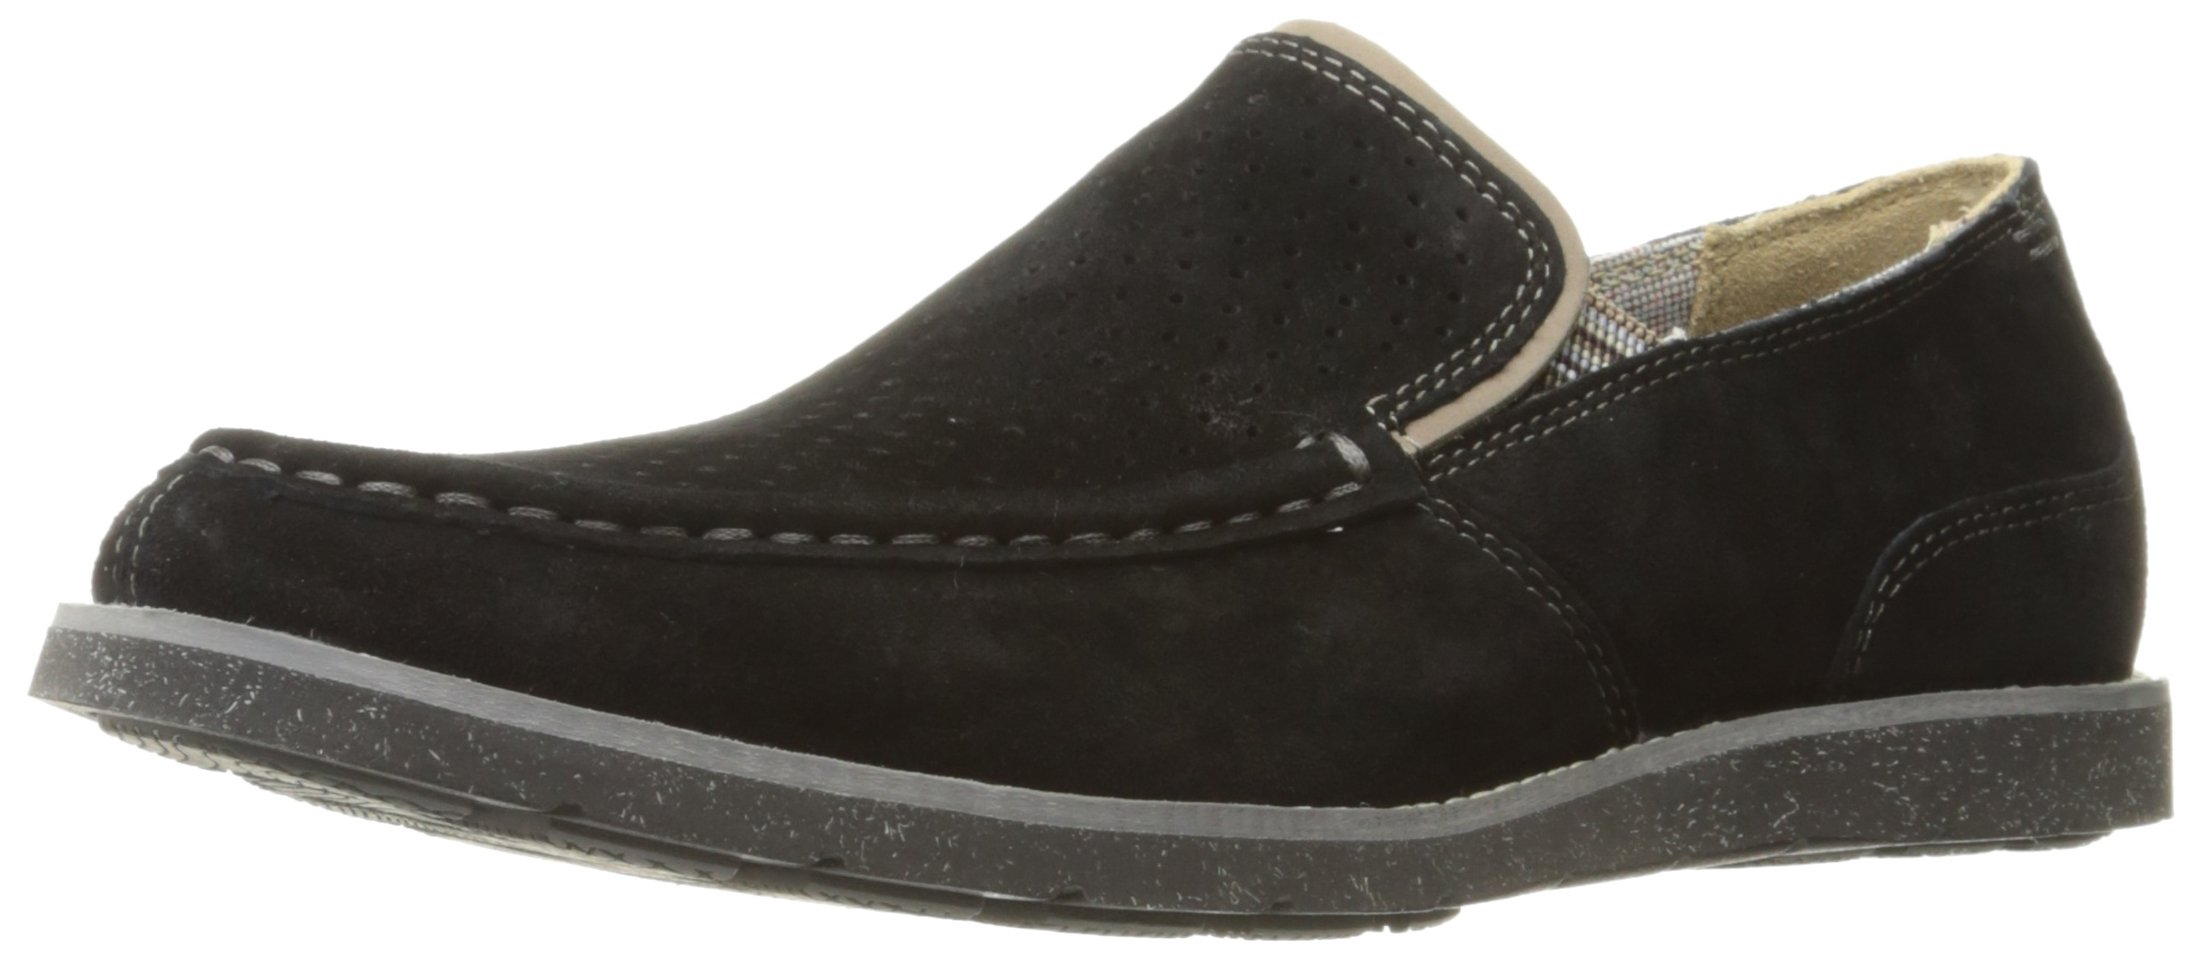 Hush Puppies HM01617-001 : Men's Lorens Jester Slip-on Loafer, Black Suede (10 D(M) US) by Hush Puppies